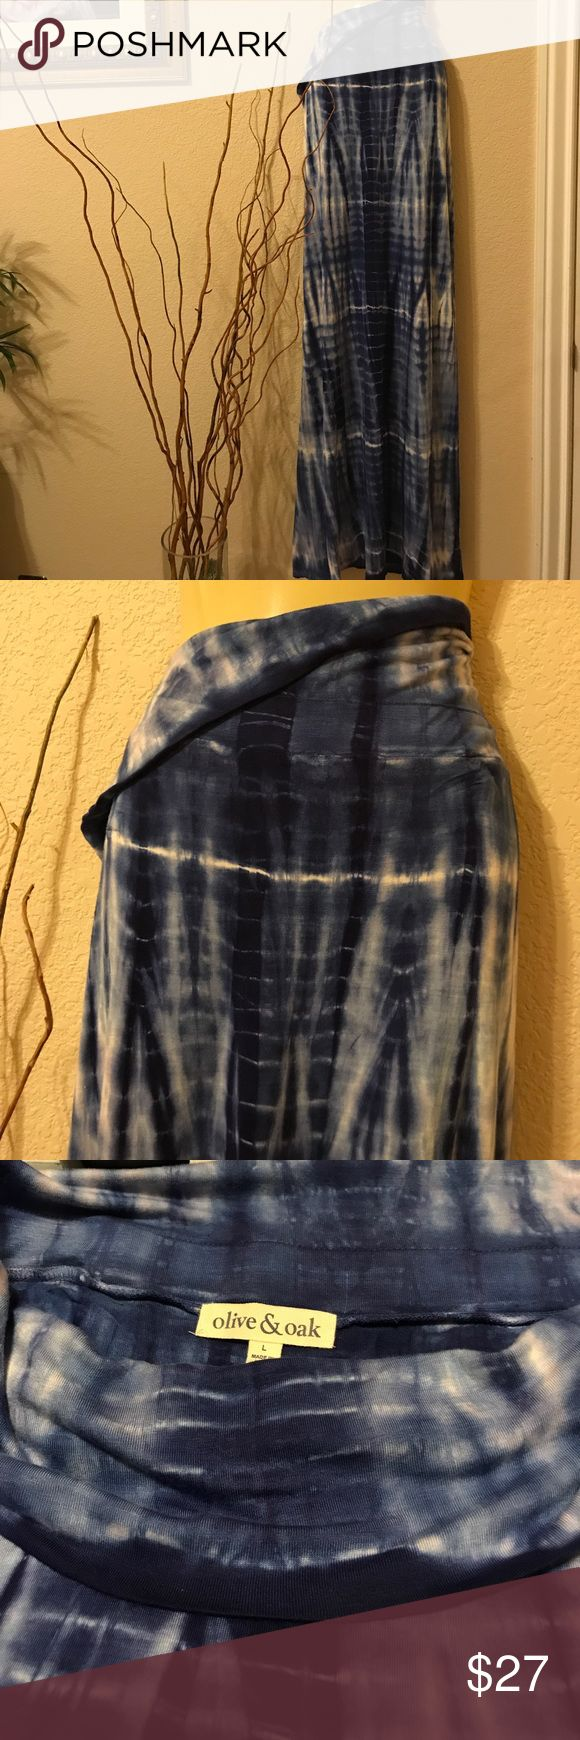 Blue Tie Dyed Maxi Skirt by Olive & Oak Beautiful fold over waistband tie dyed blue Maxi Skirt. This a size Large NWOT. Skirt is approximately 4' long. Olive & Oak Skirts Maxi